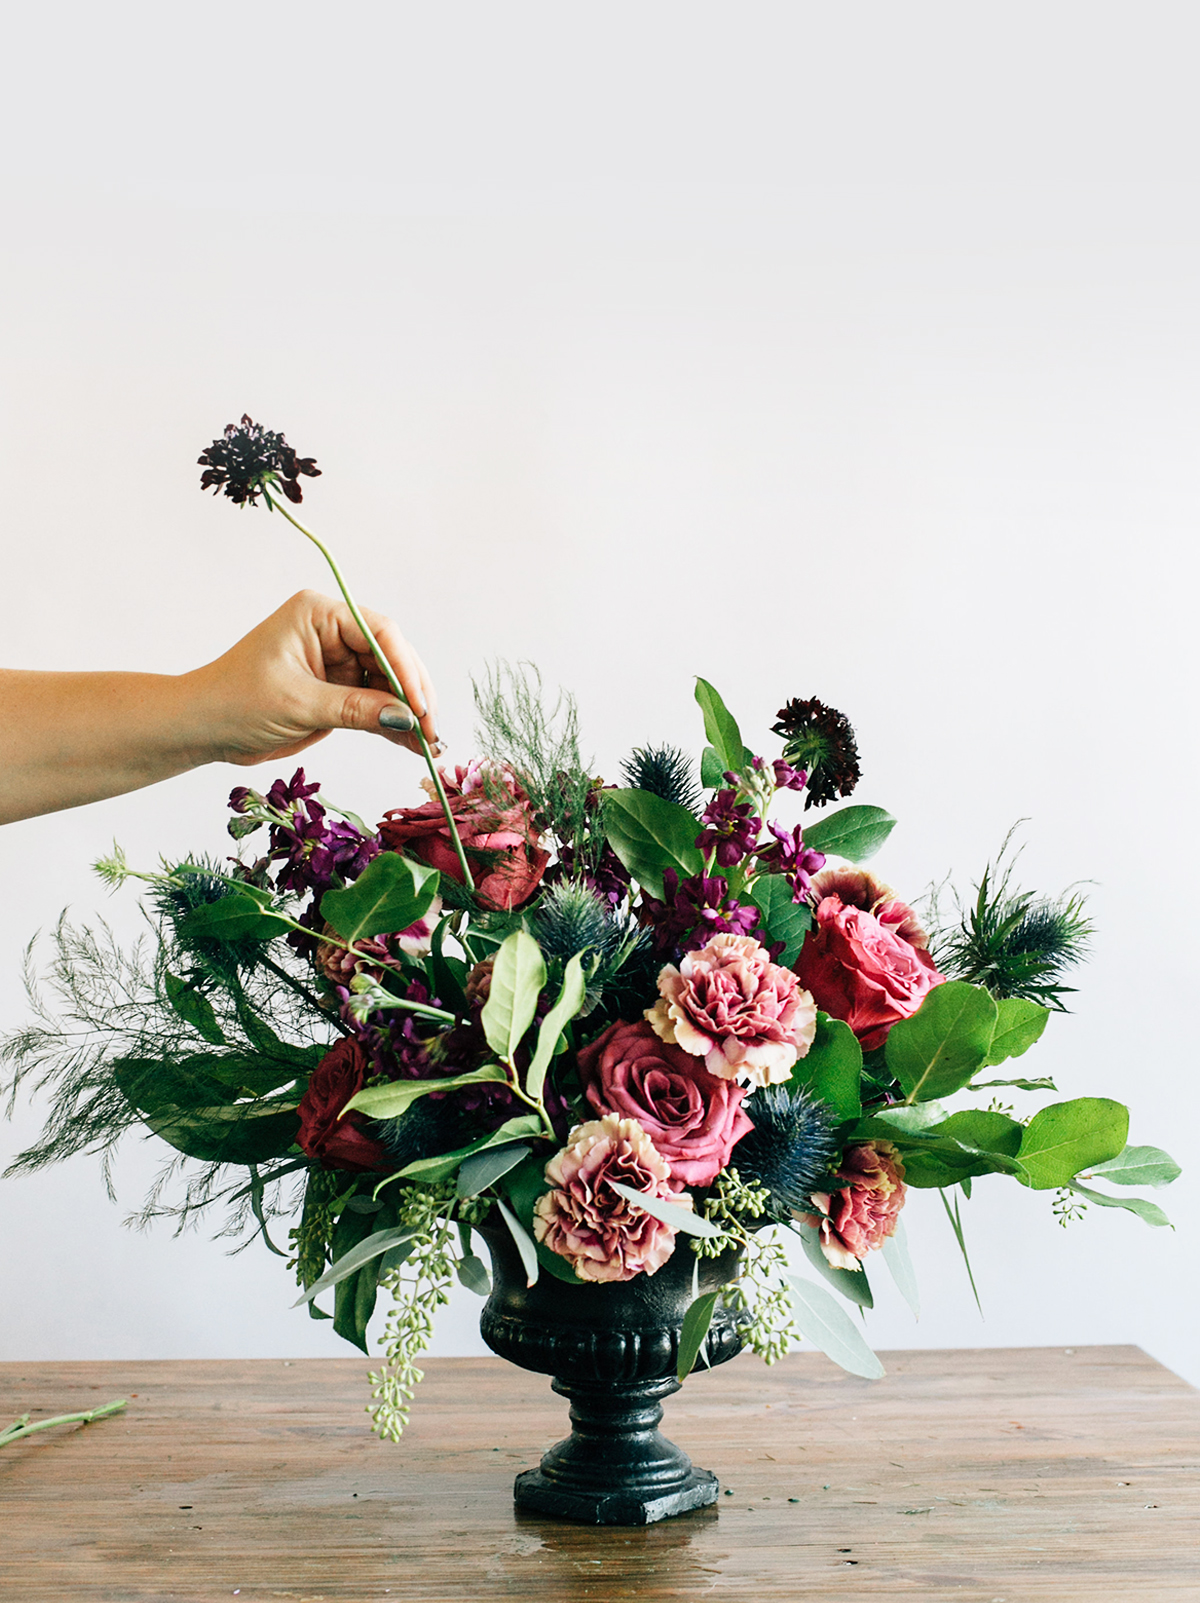 diy wedding flowers wedding flower arrangements DIY Wedding Flowers 10 Simple Tips That Will Save You a Meltdown A Practical Wedding We re Your Wedding Planner Wedding Ideas for Brides Bridesmaids